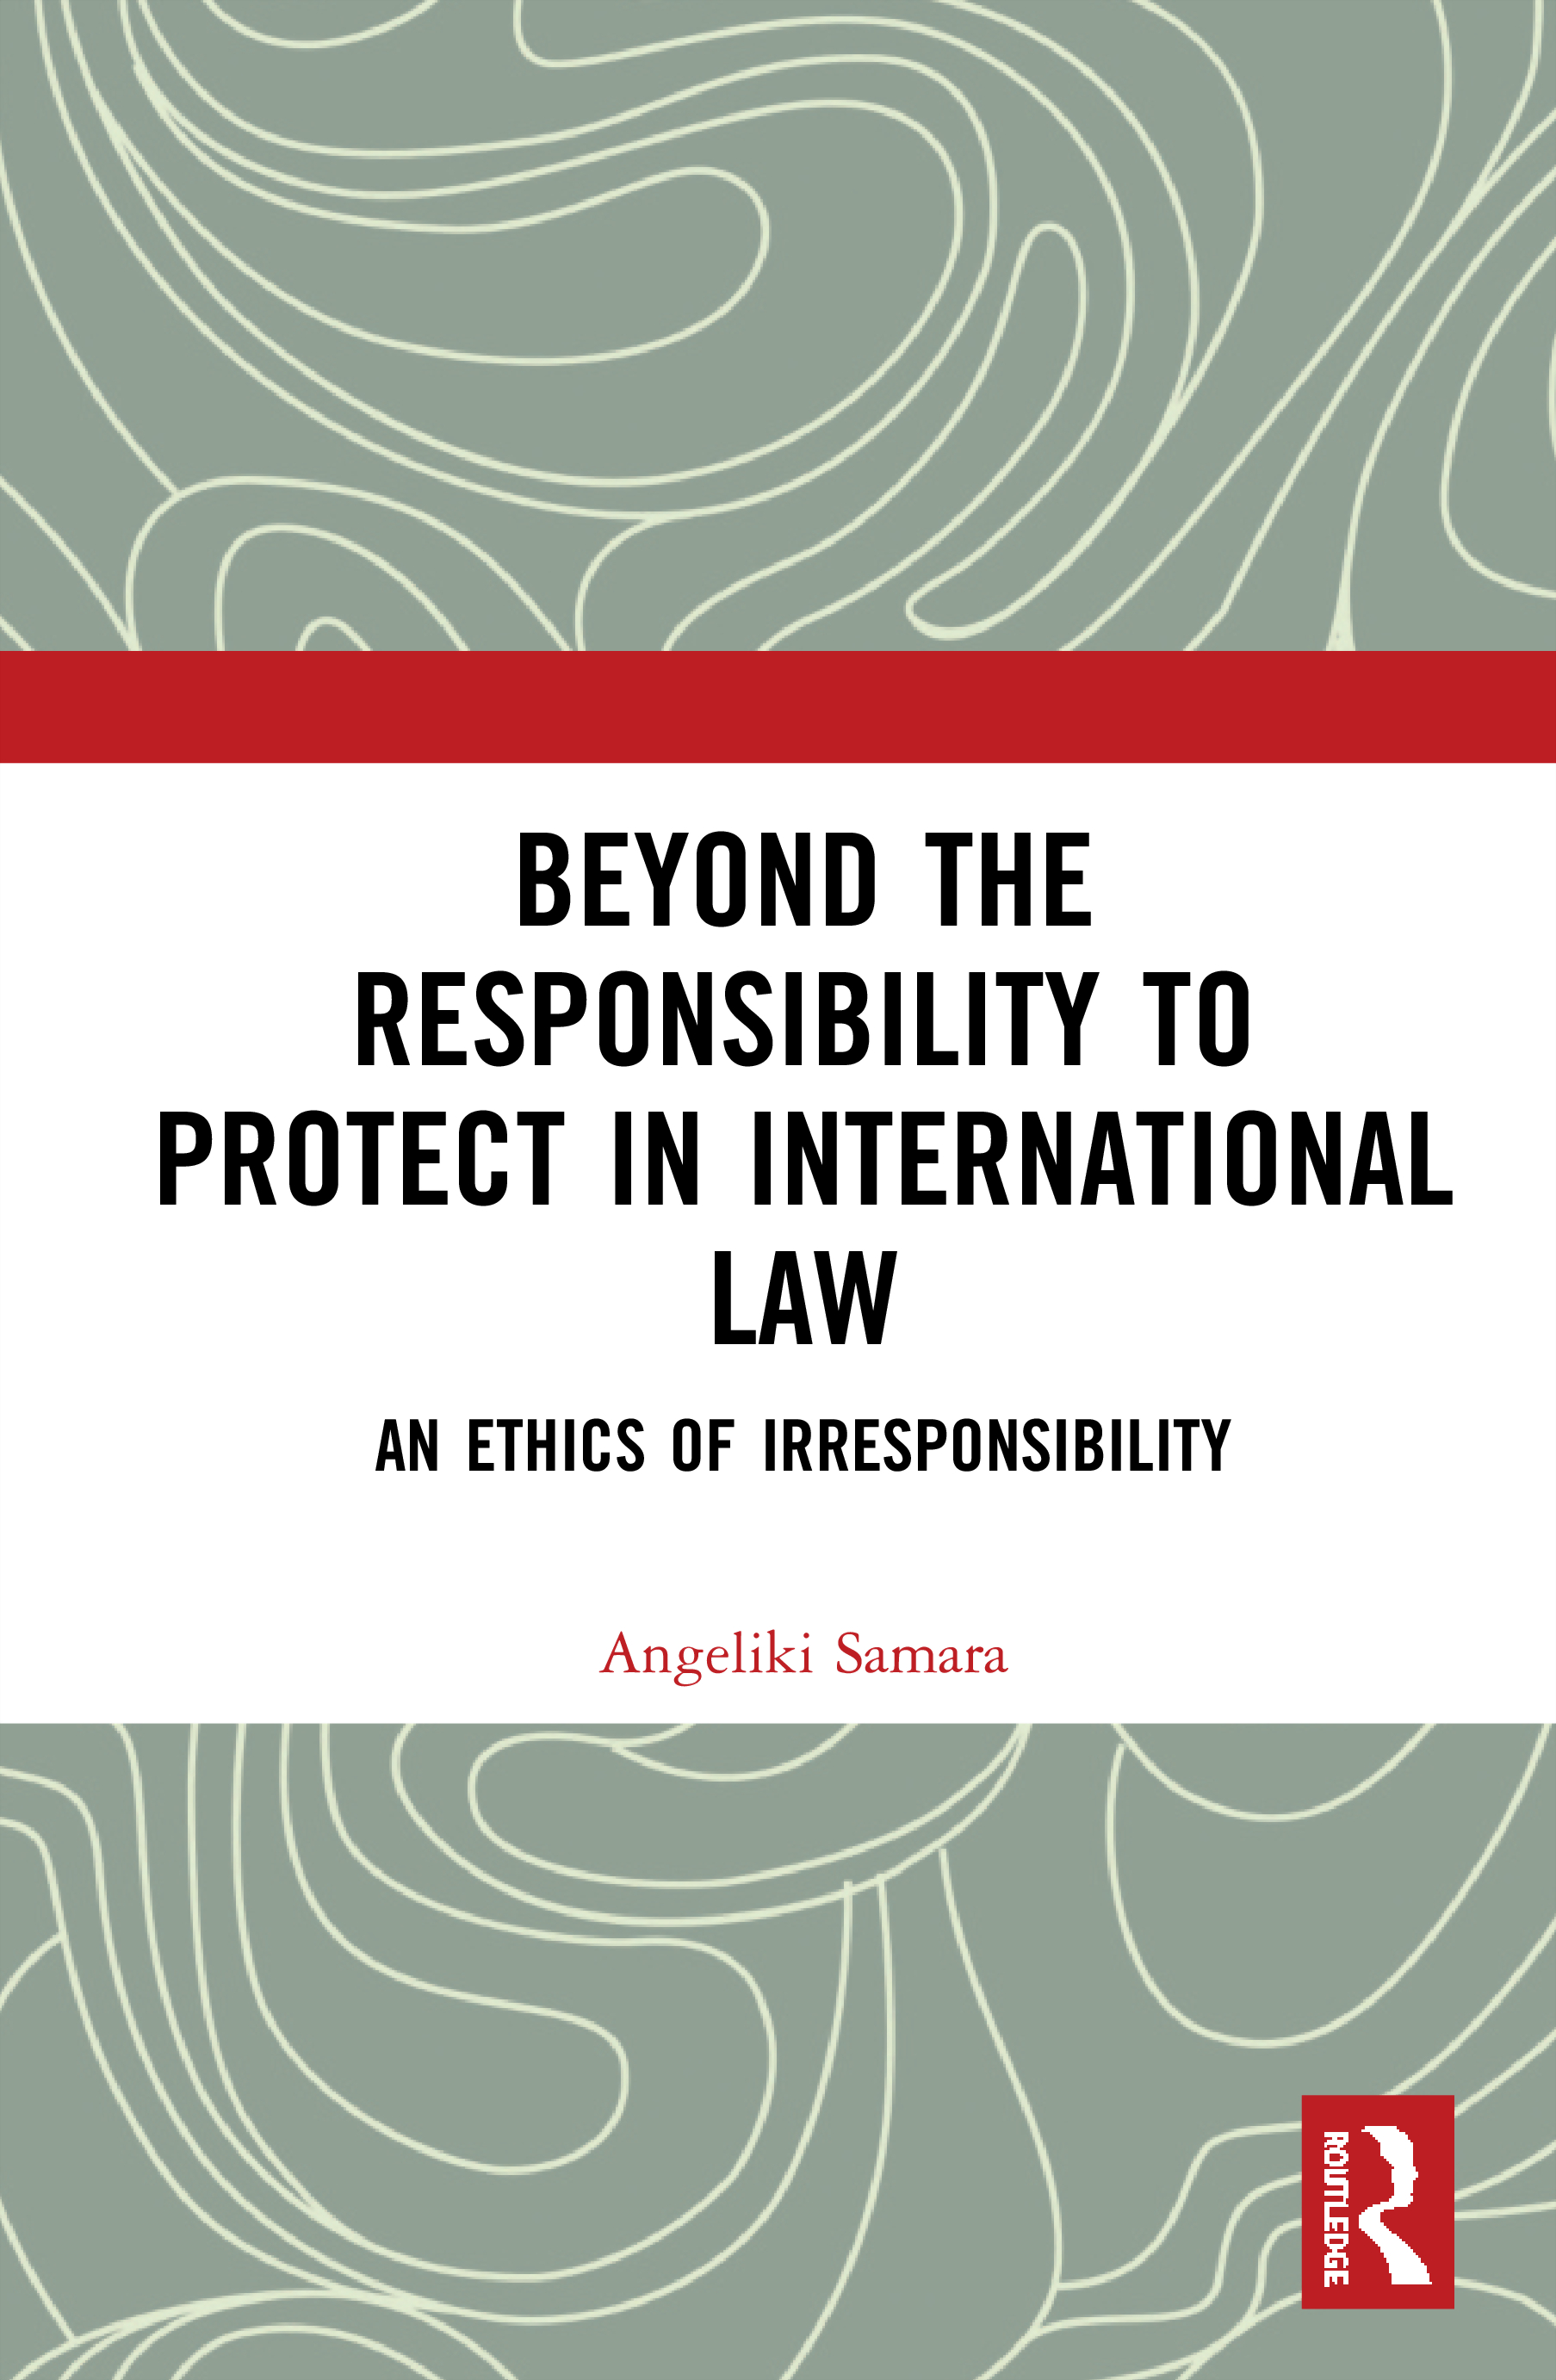 Beyond the Responsibility to Protect in International Law: An Ethics of Irresponsibility book cover